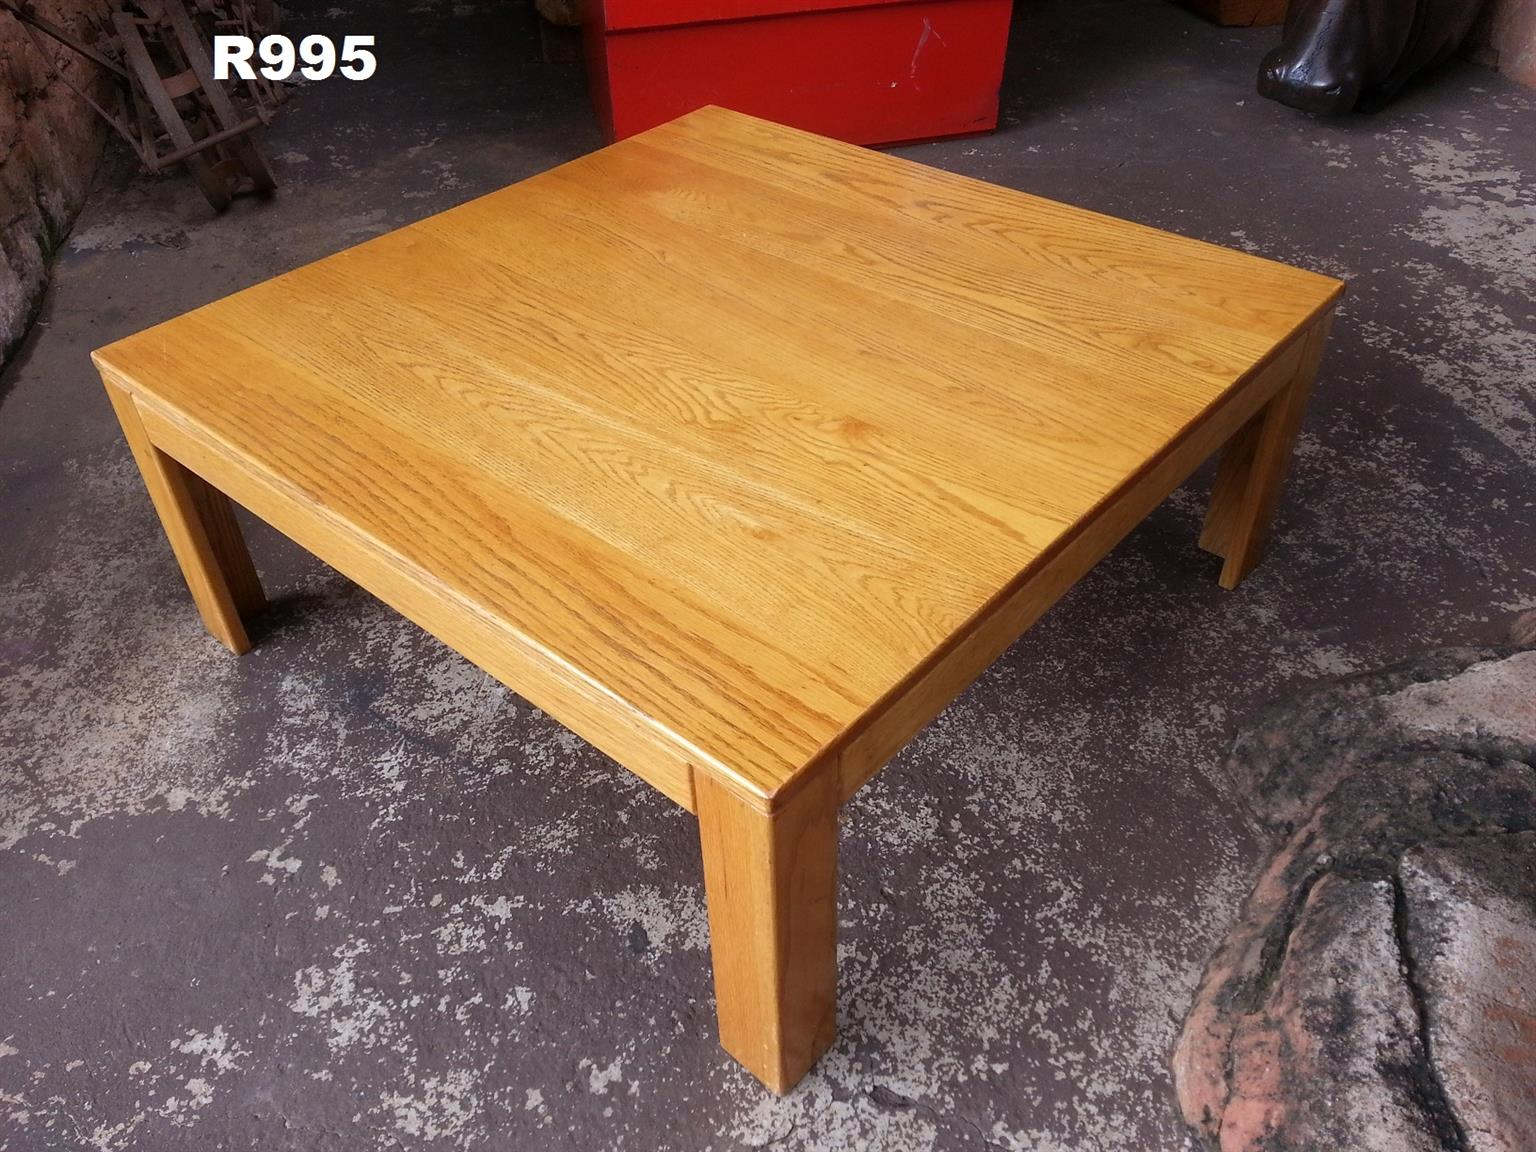 Large Solid Oak Coffee Table (1000x1000x410)